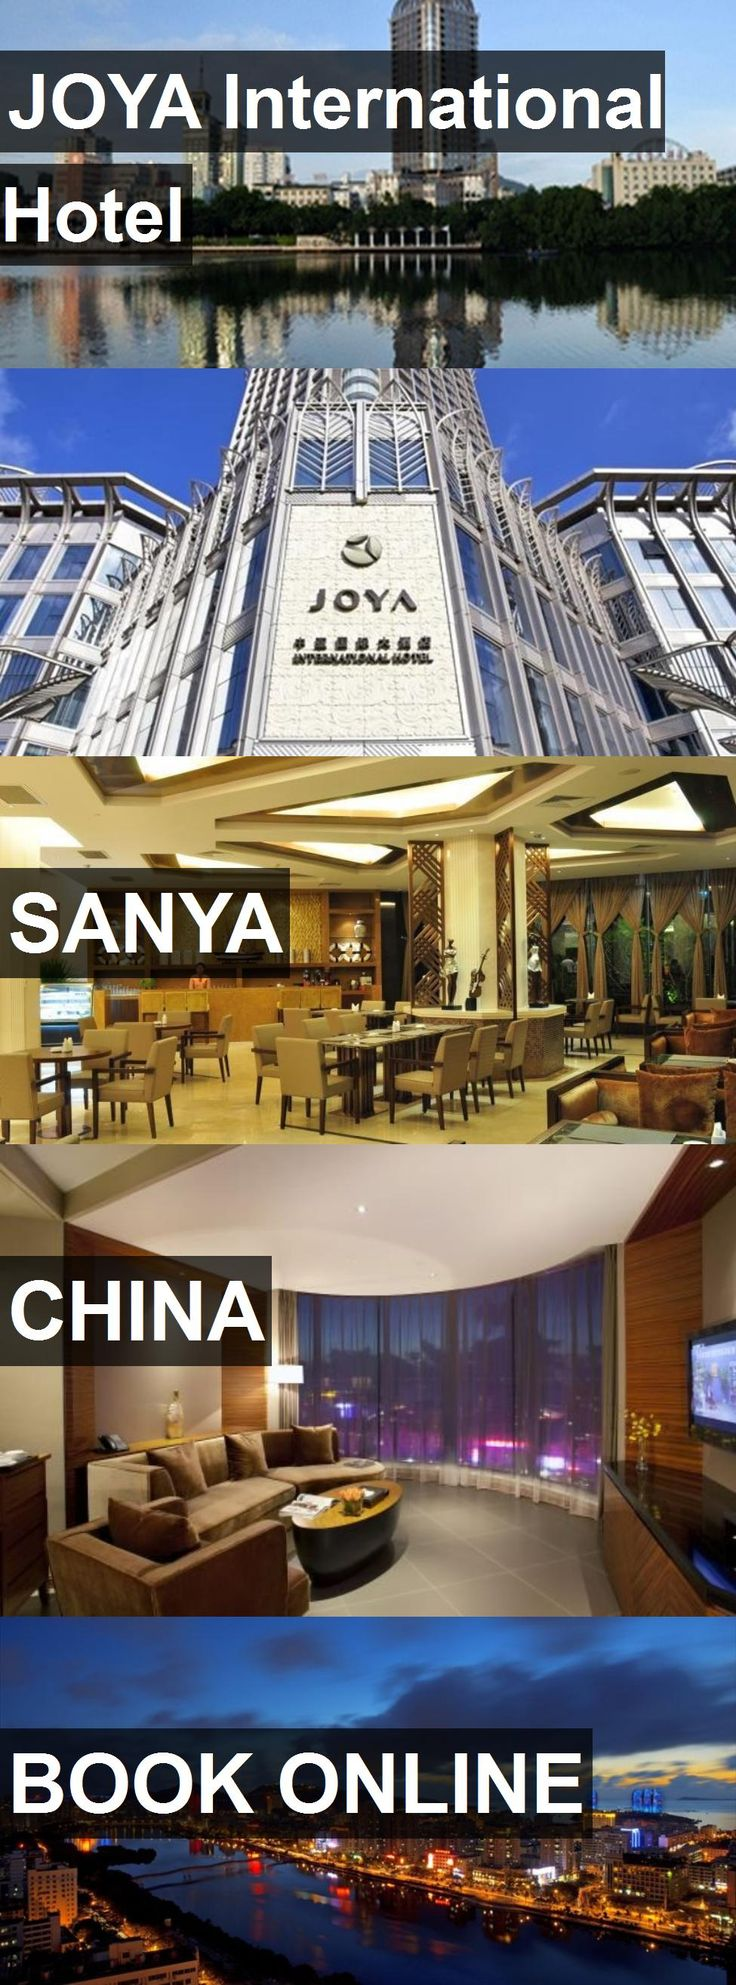 Hotel JOYA International Hotel in Sanya, China. For more information, photos, reviews and best prices please follow the link. #China #Sanya #hotel #travel #vacation